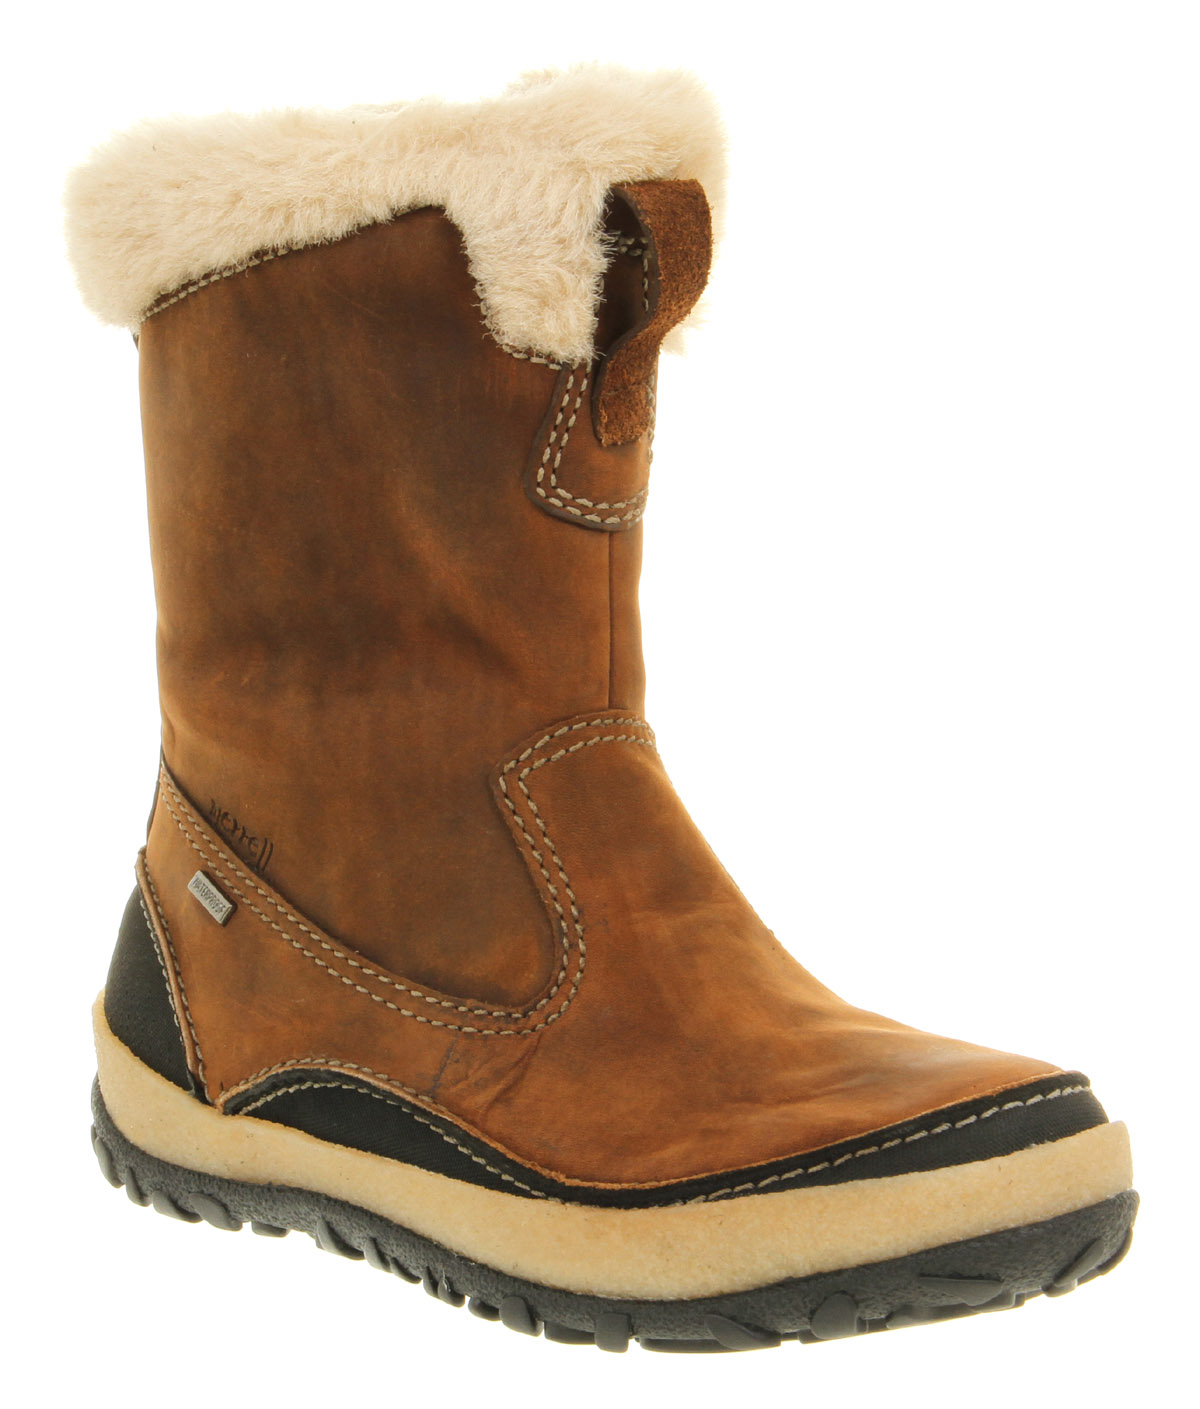 Womens Merrell Taiga Zip Up Camel Brown Waterproof Leather Winter ...